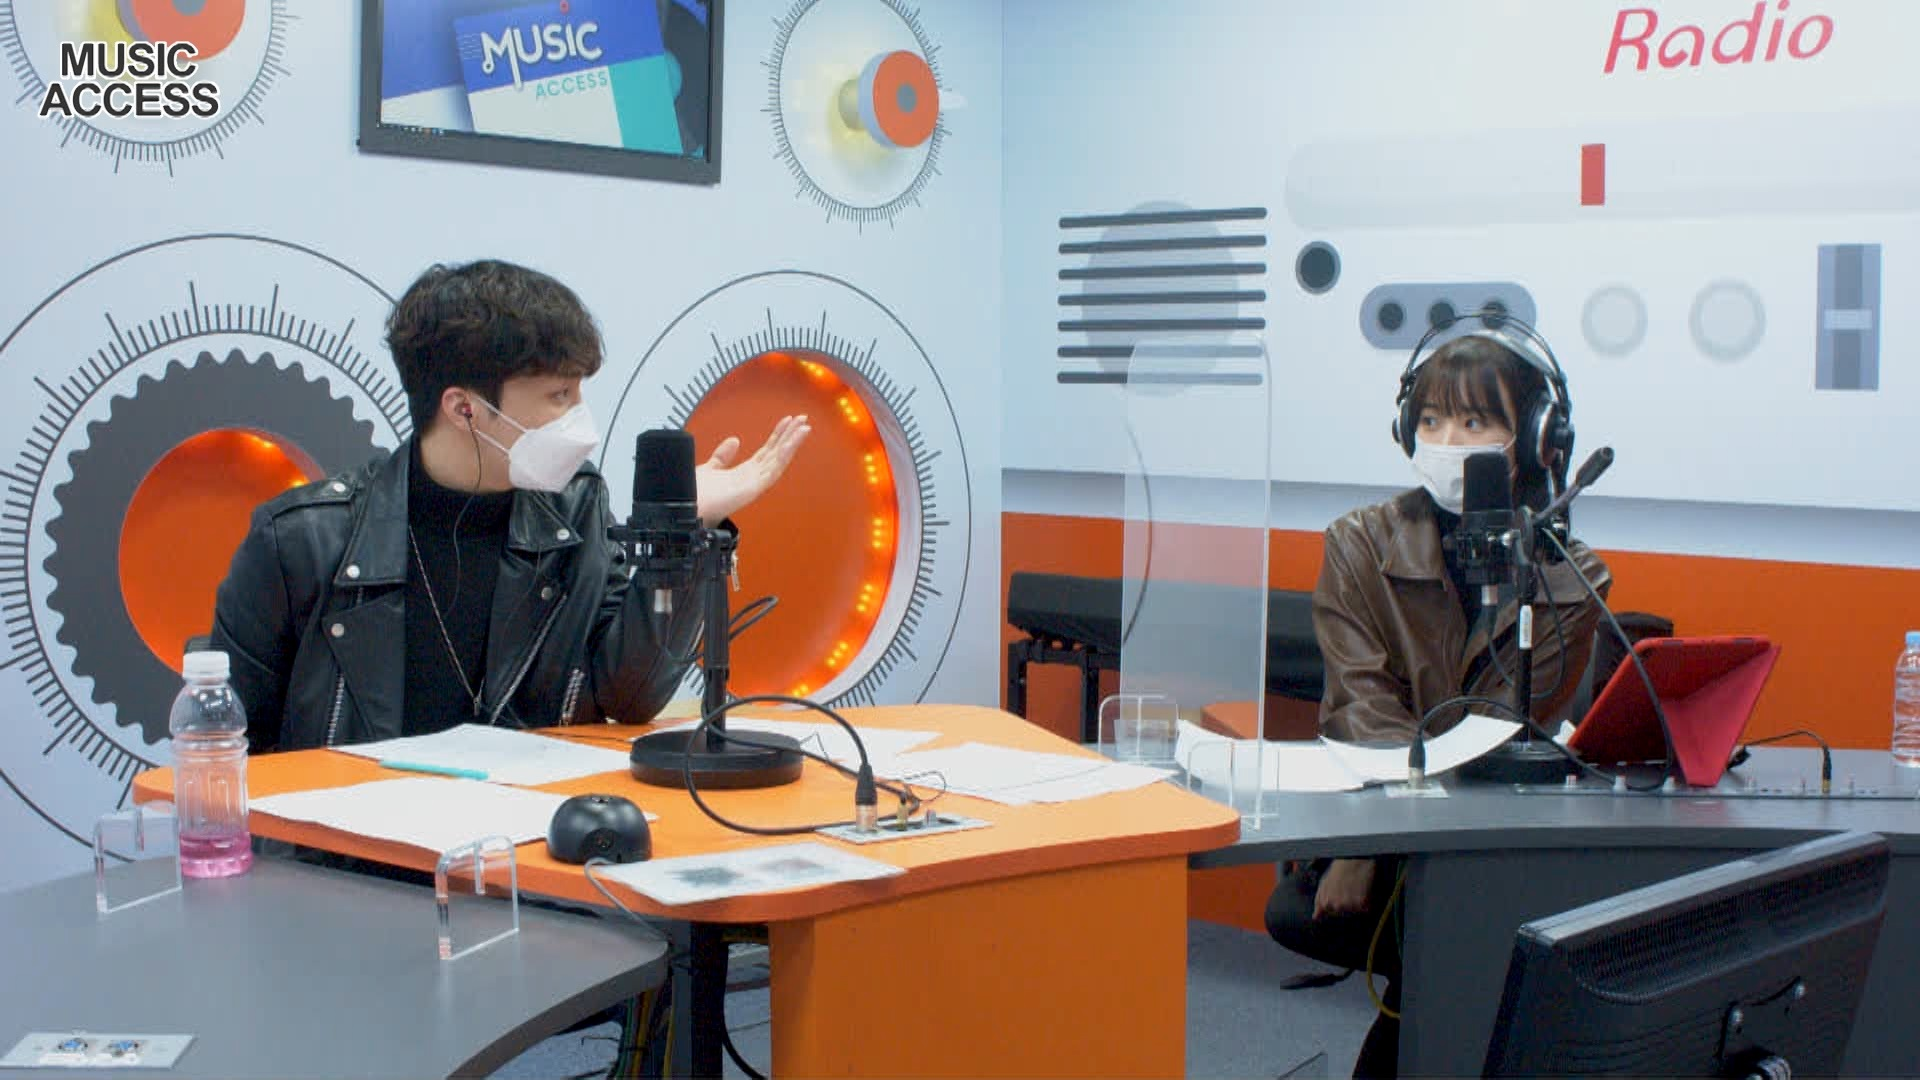 [Music Access] Choi Jungyoon (최정윤)'s Full Episode on Arirang Radio!